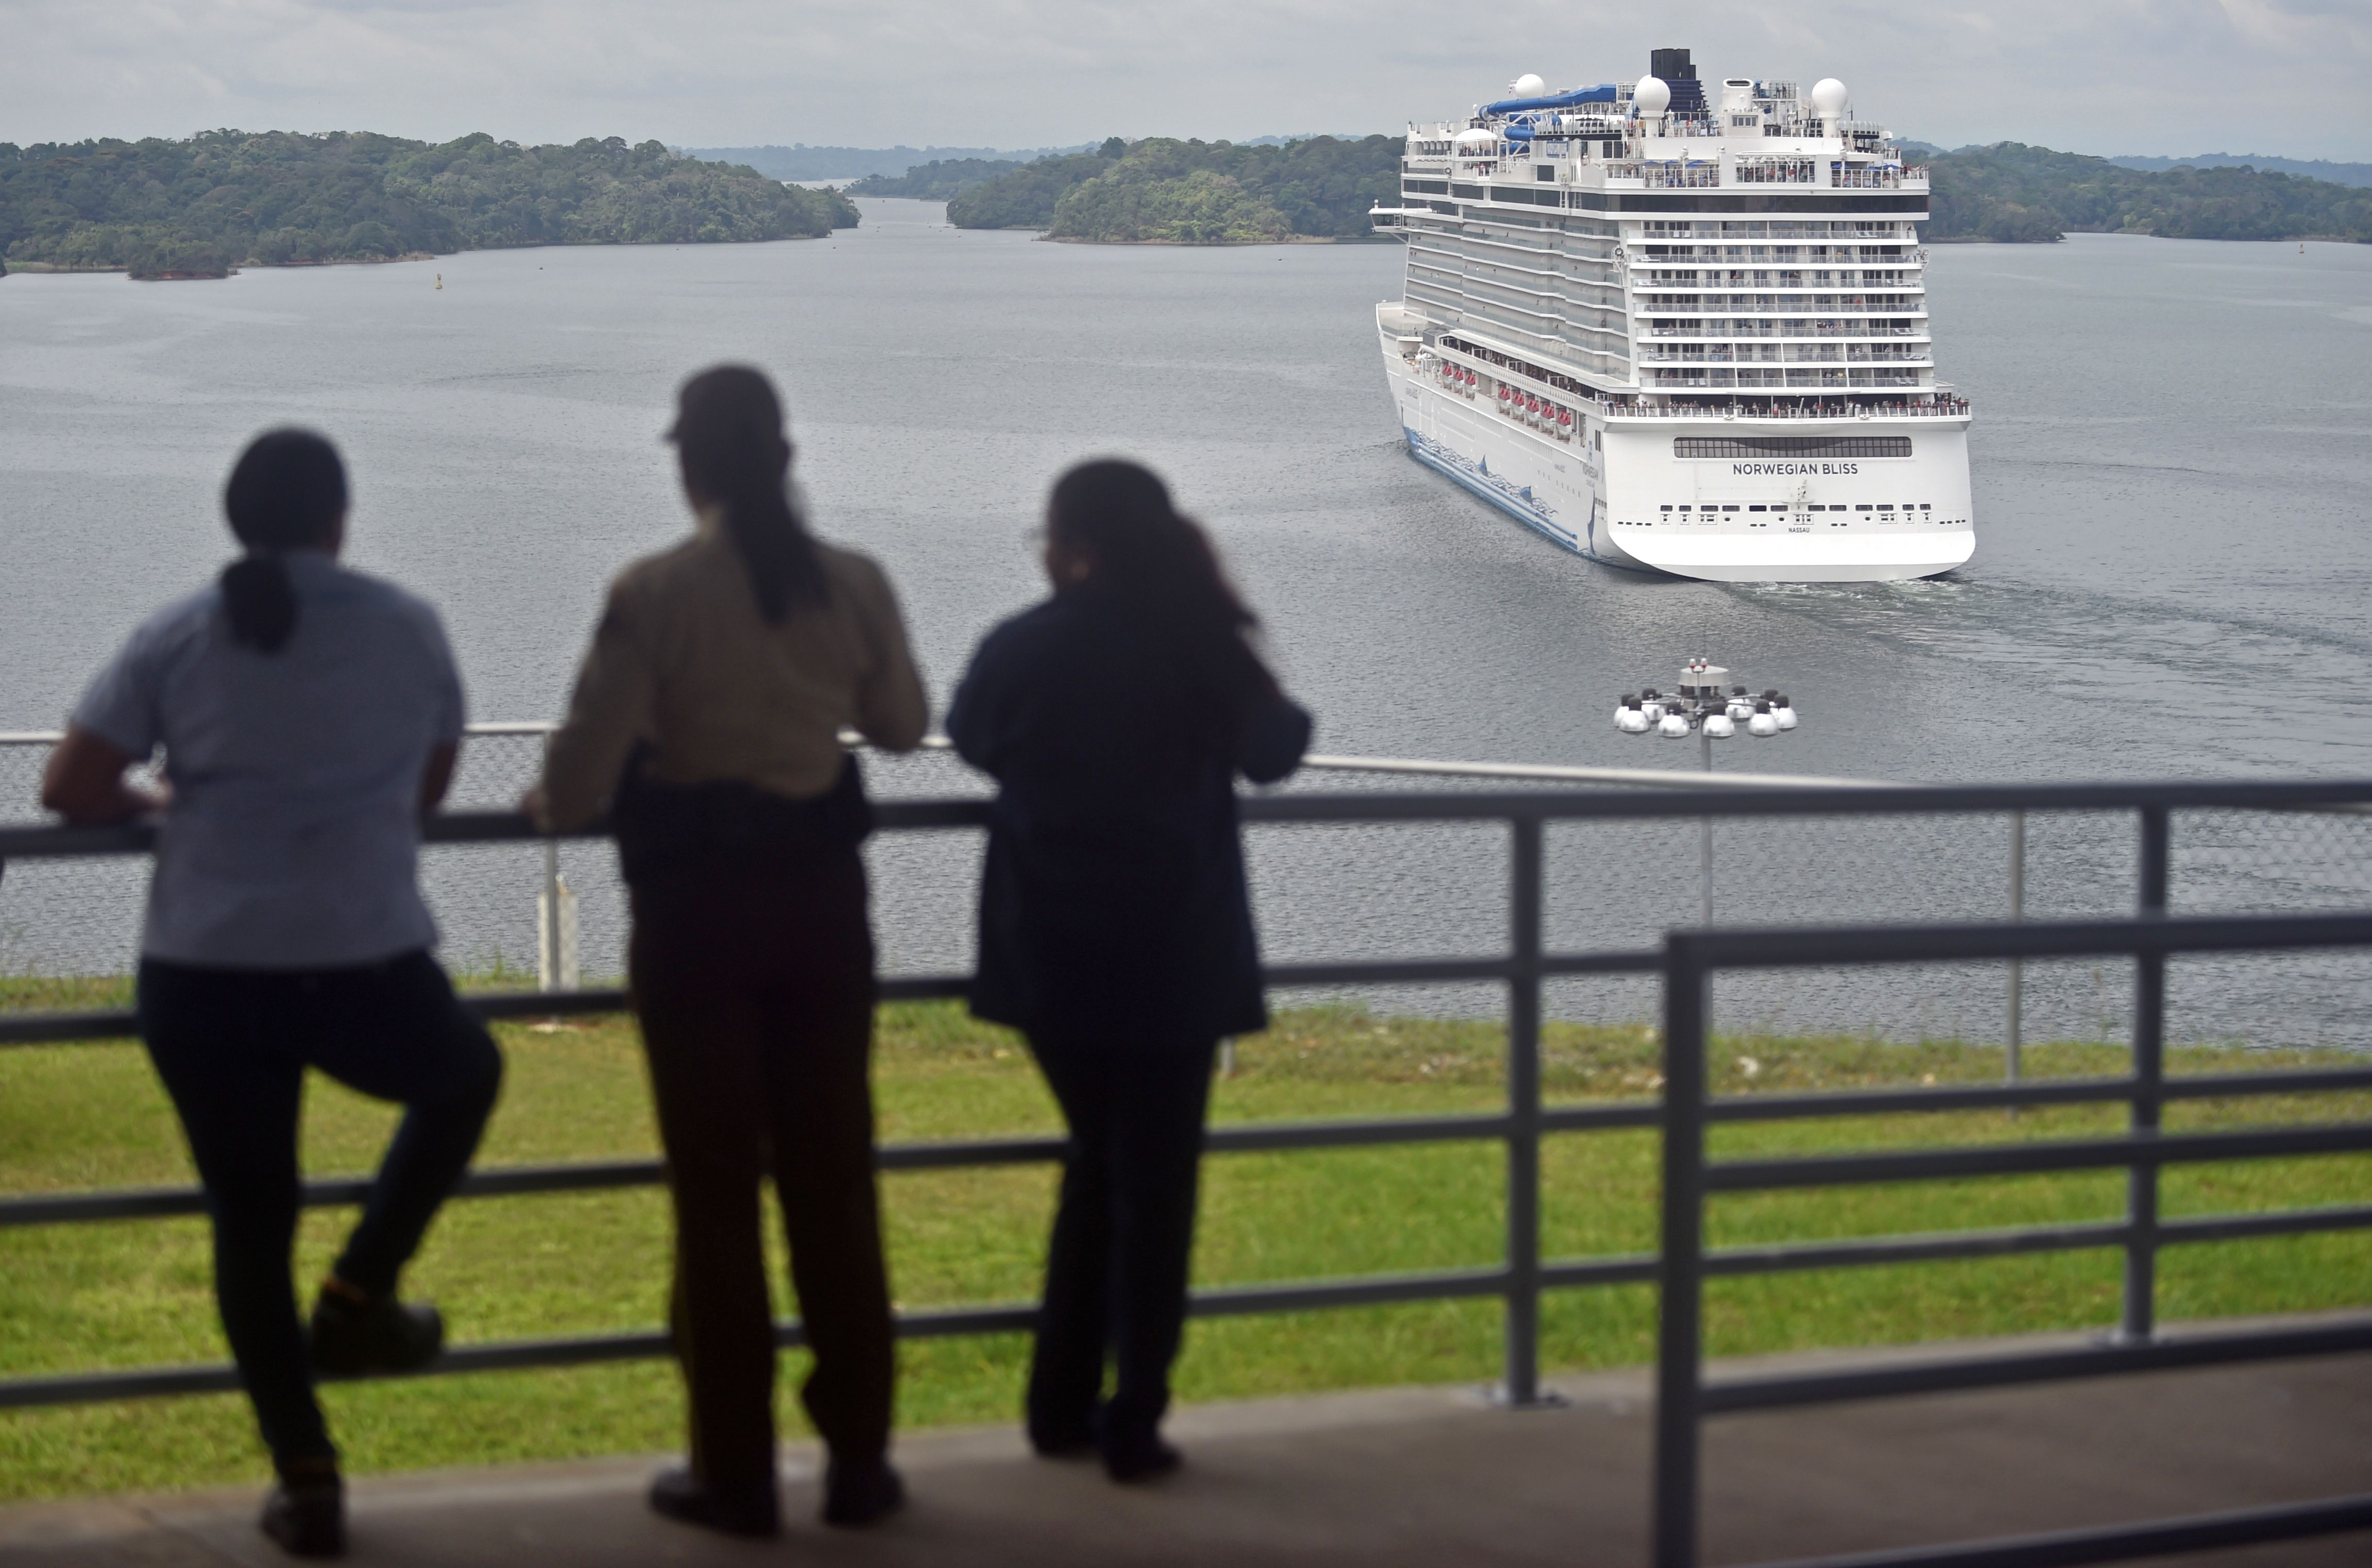 People look at a cruise ship crossing the Panama Canal in the Agua Clara locks in Colon 80 km northwest from Panama City.